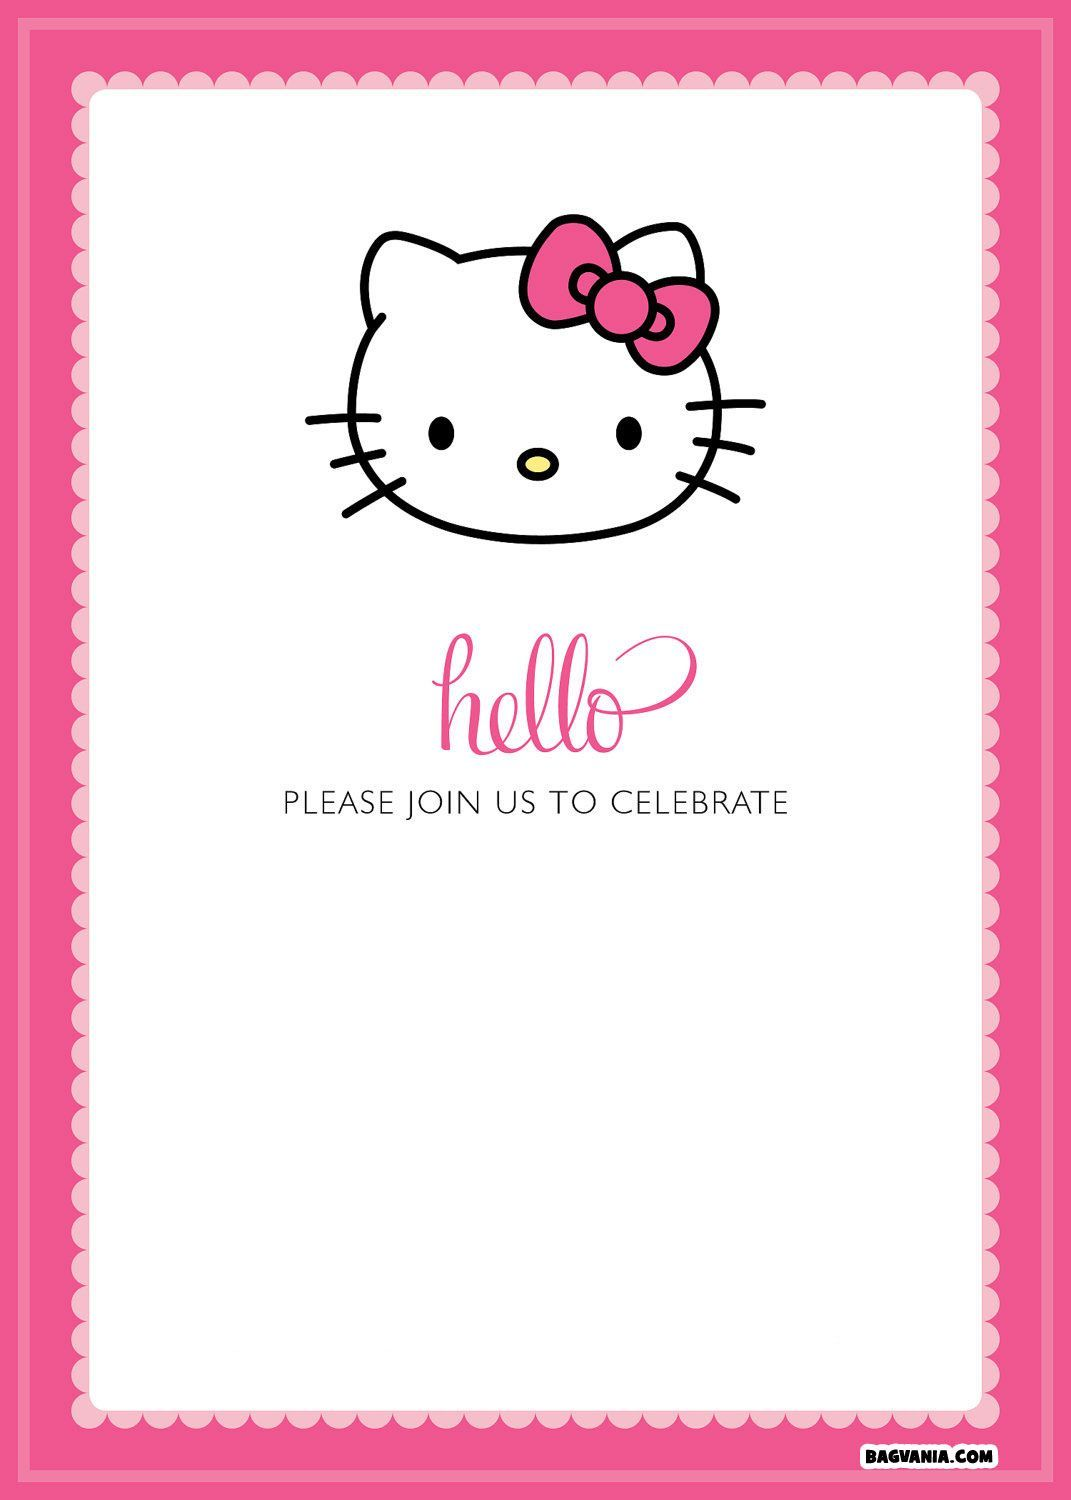 Cool Hello Kitty Party Invitations Fresh Hello Kitty Party Invitatio Hello Kitty Birthday Invitations Hello Kitty Invitations Birthday Invitation Card Template